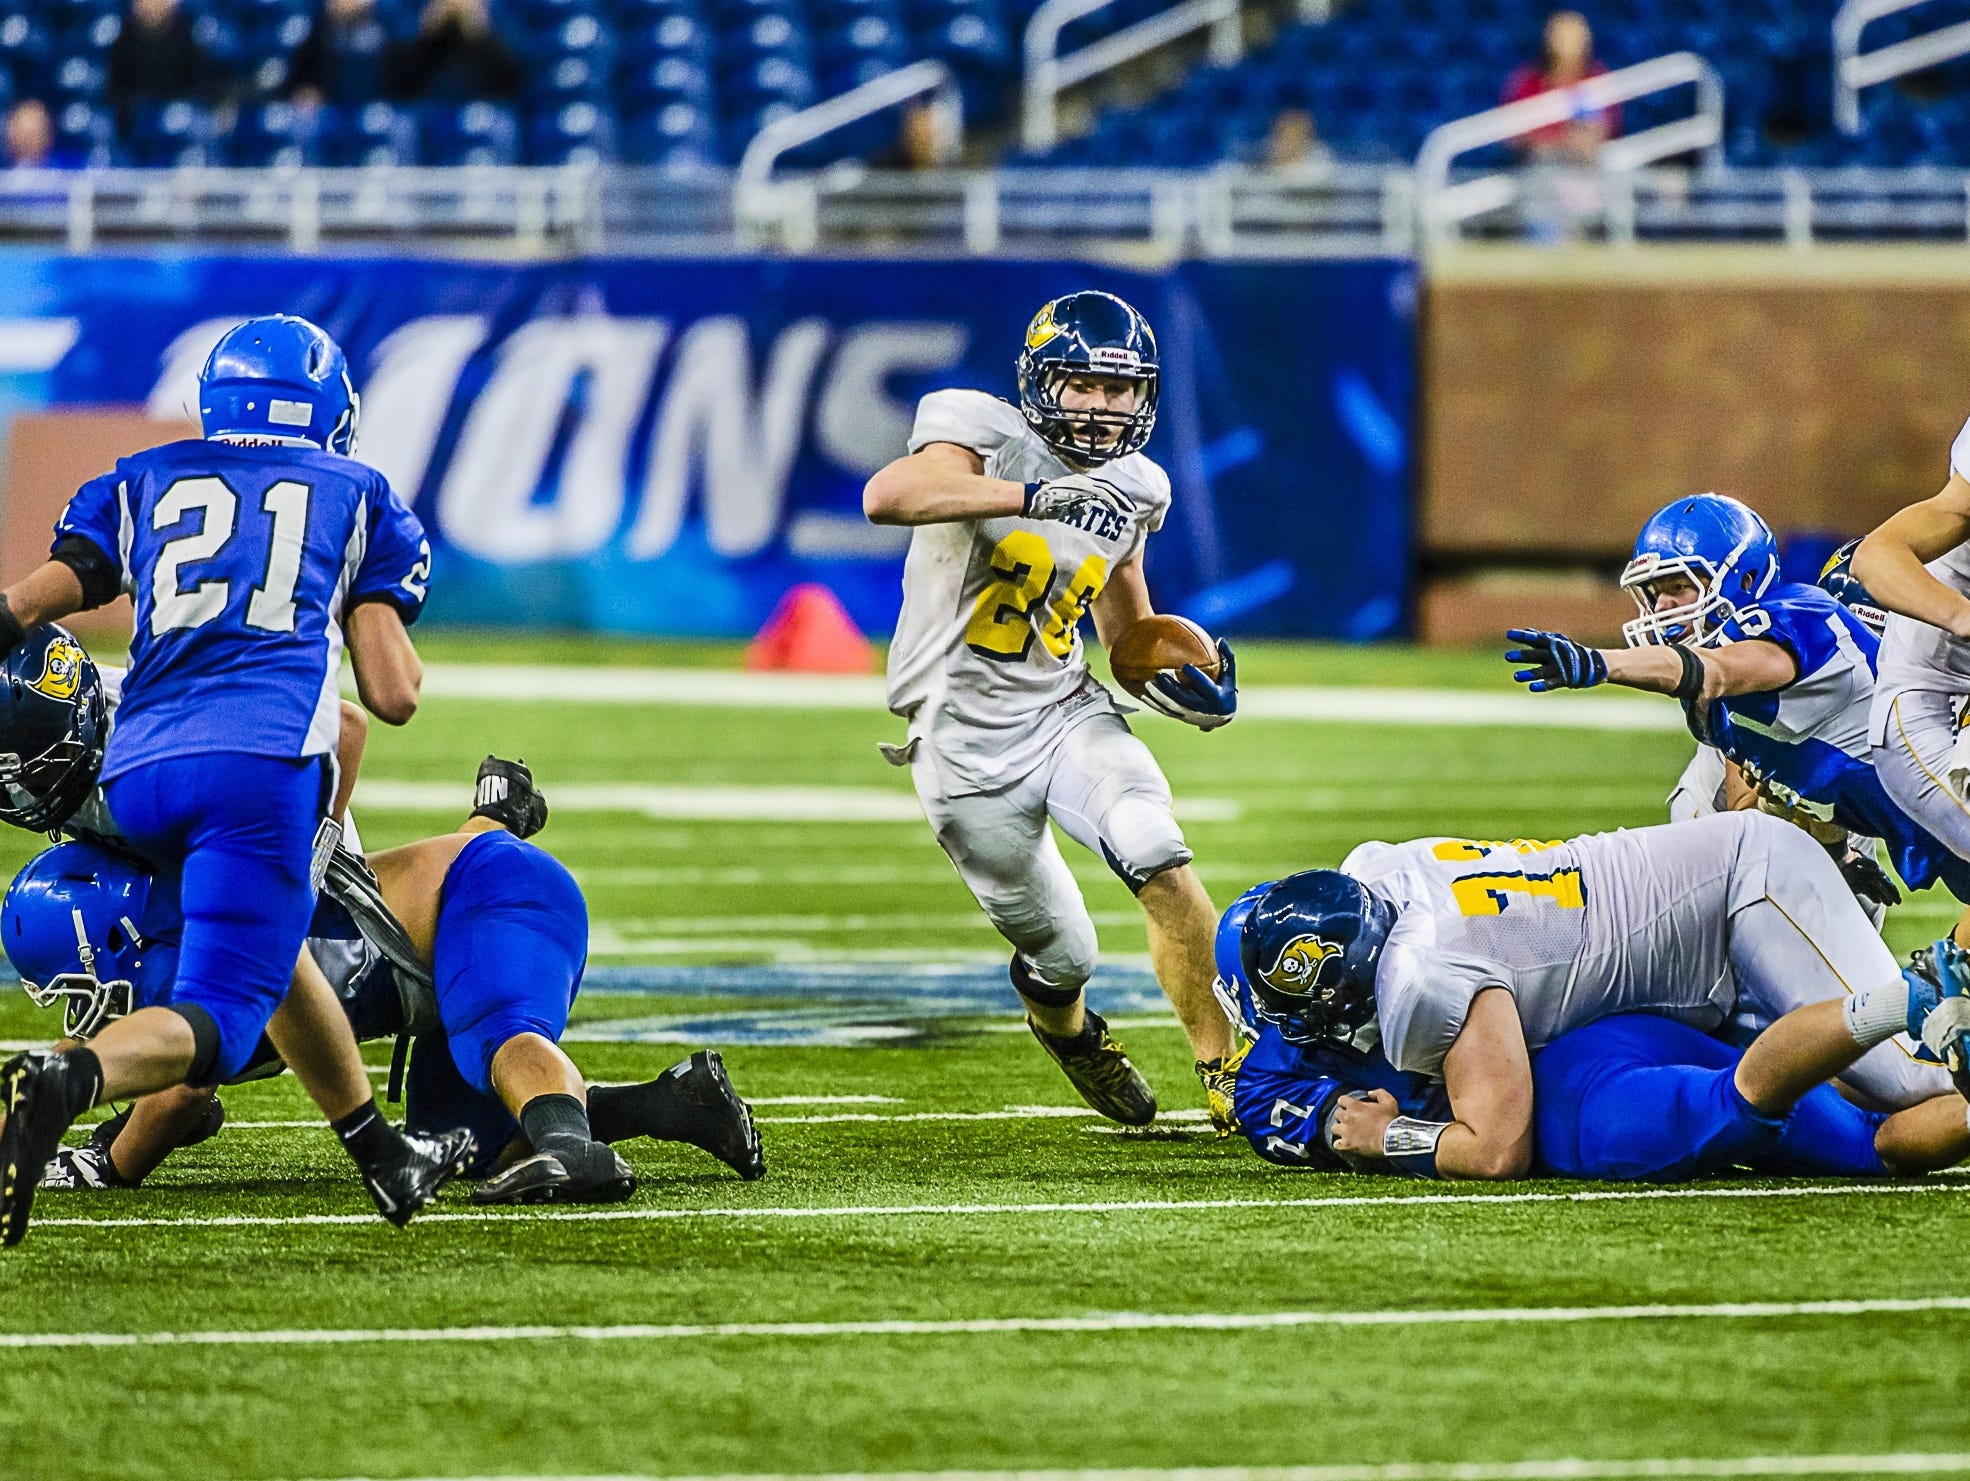 Jared Smith, of Pewamo-Westphalia, cuts back to a hole in the Ishpeming line late in the state high school football title game last season. He ended the season with 3,250 rushing yards, a new state record. Smith is one of nine returning players on offense and defense for the Pirates.